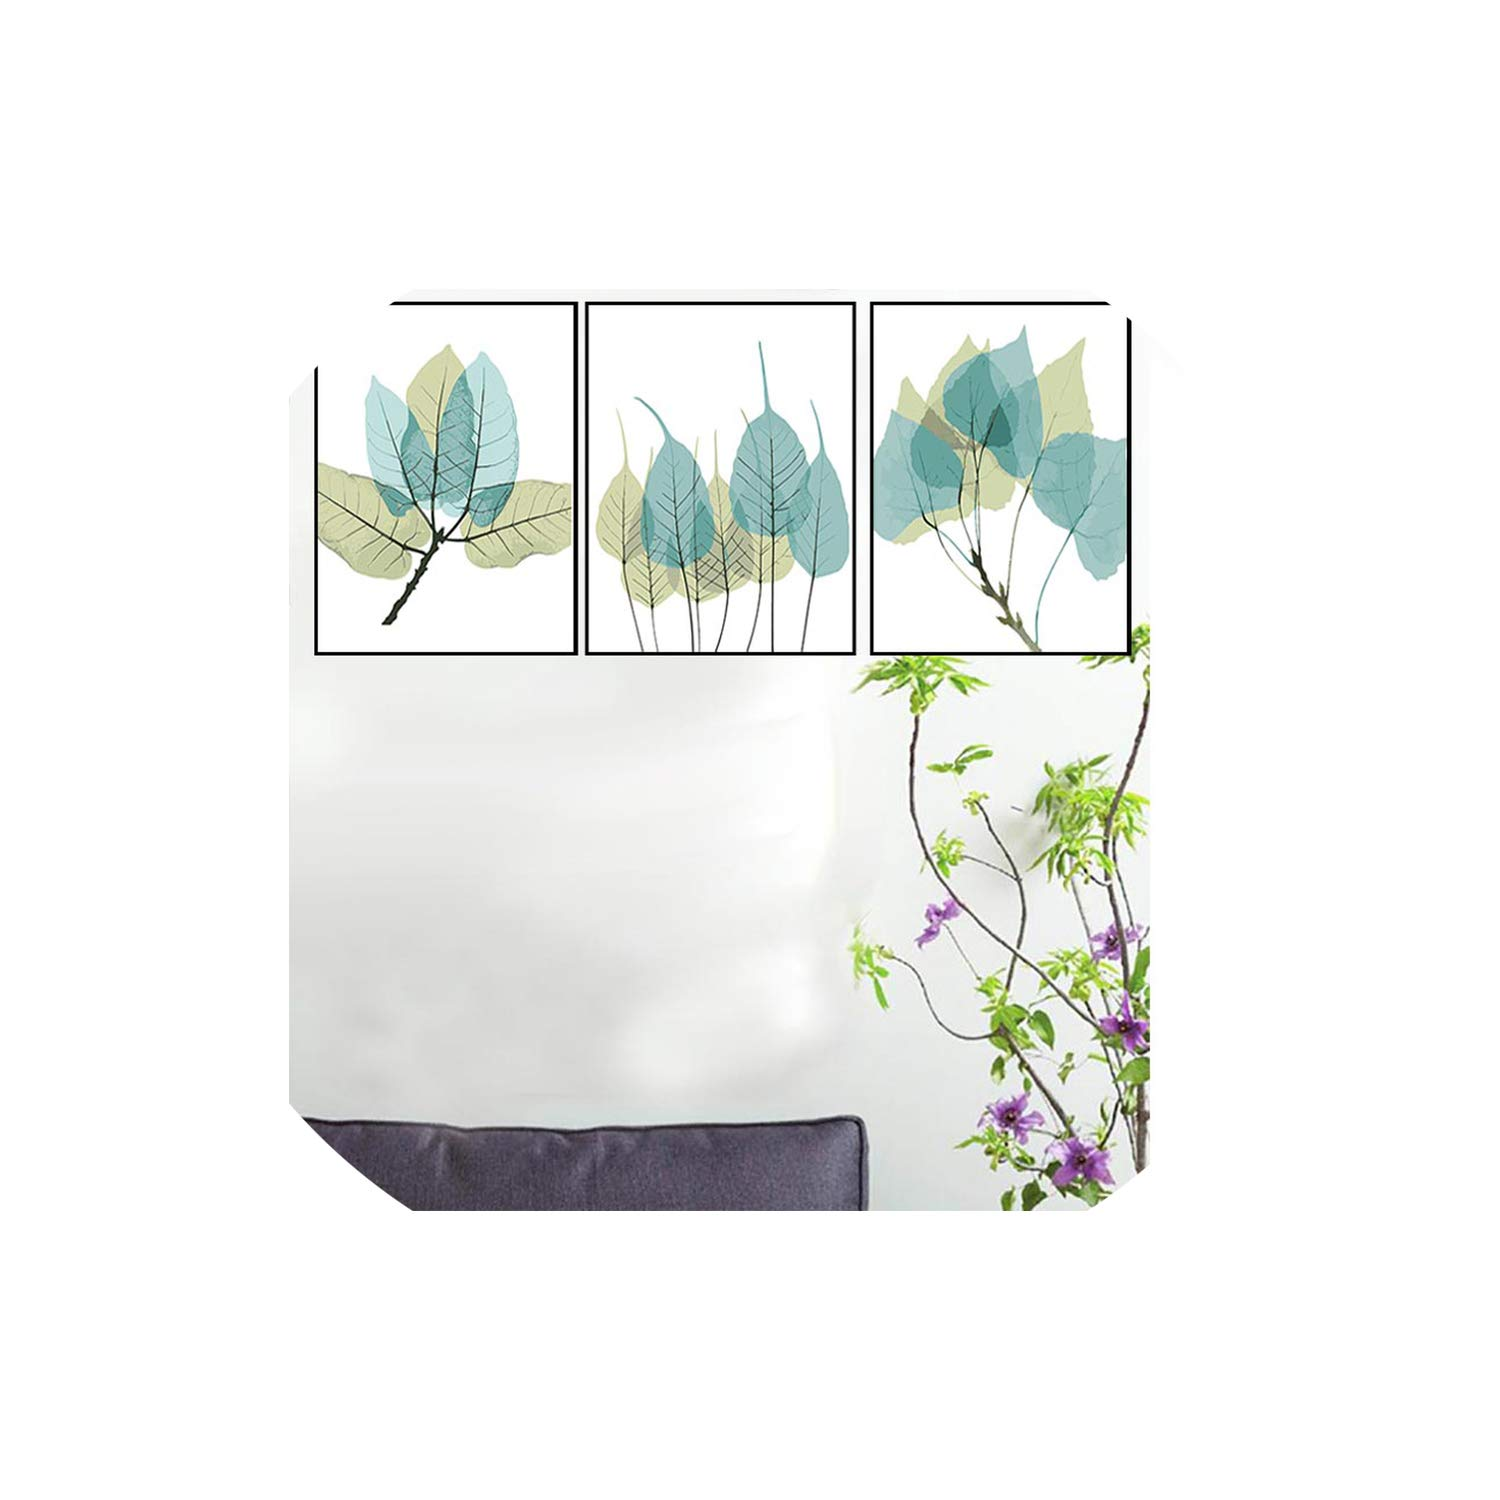 MOMO 3X DIY Oil Painting by Numbers Flowers Triptych Modular Coloring Picture Deer Abstract Paint Home Decor Wall Sticker Unfinished,40X50X3Pc with Frame,14 Leaves by MOMO